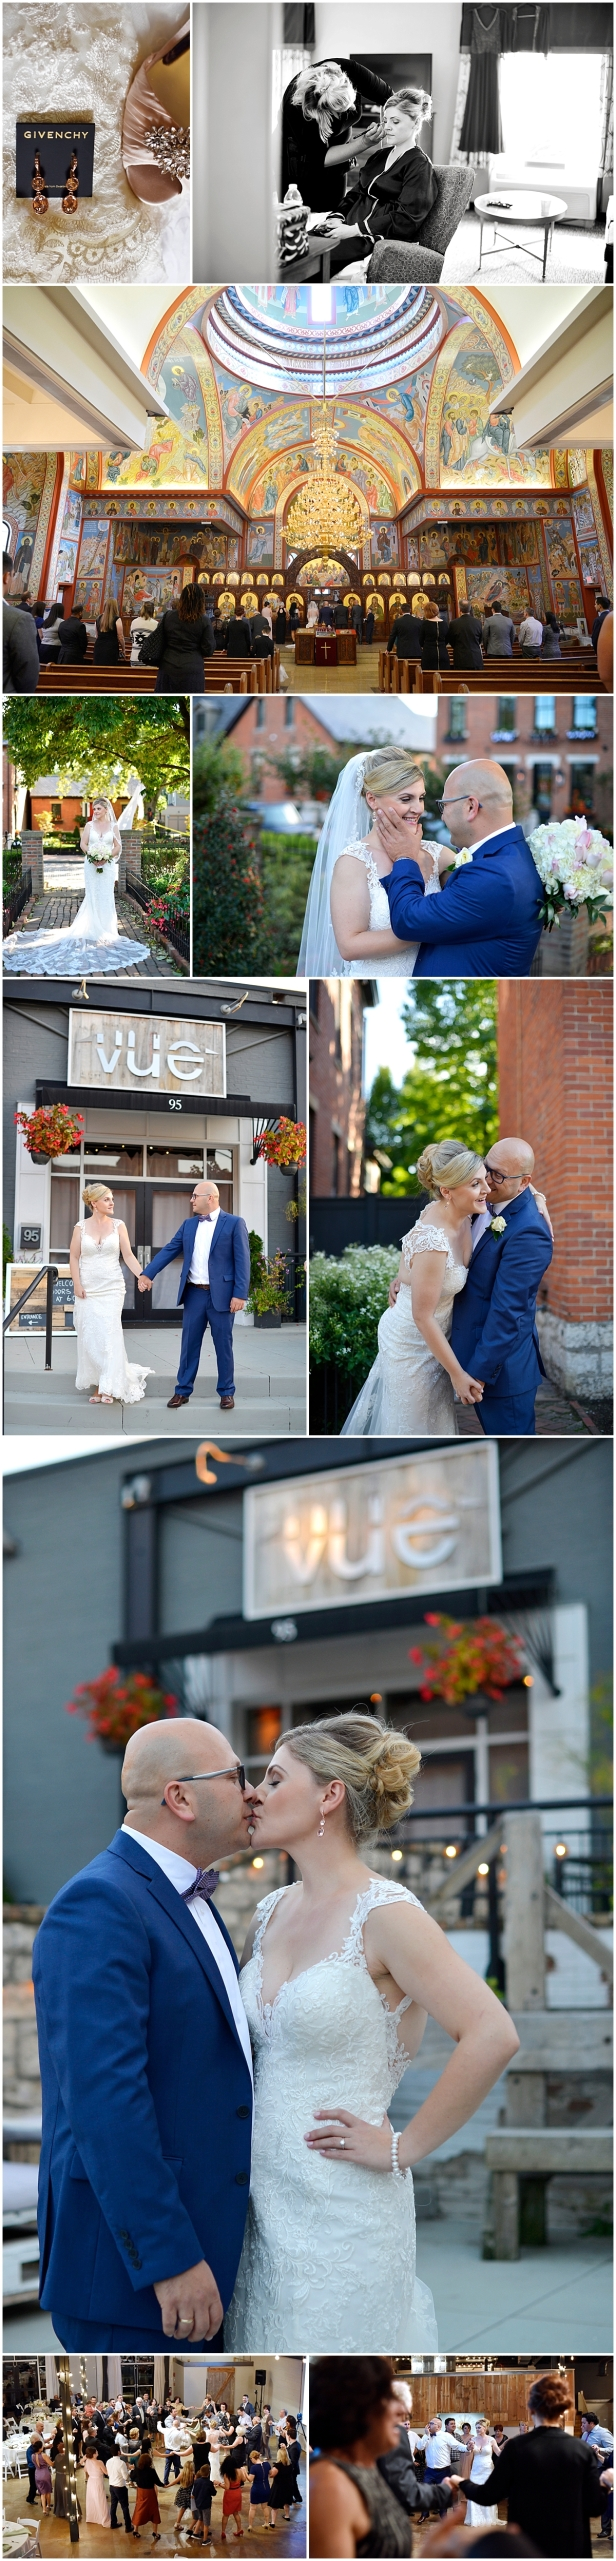 the-vue-wedding-columbus-ohio